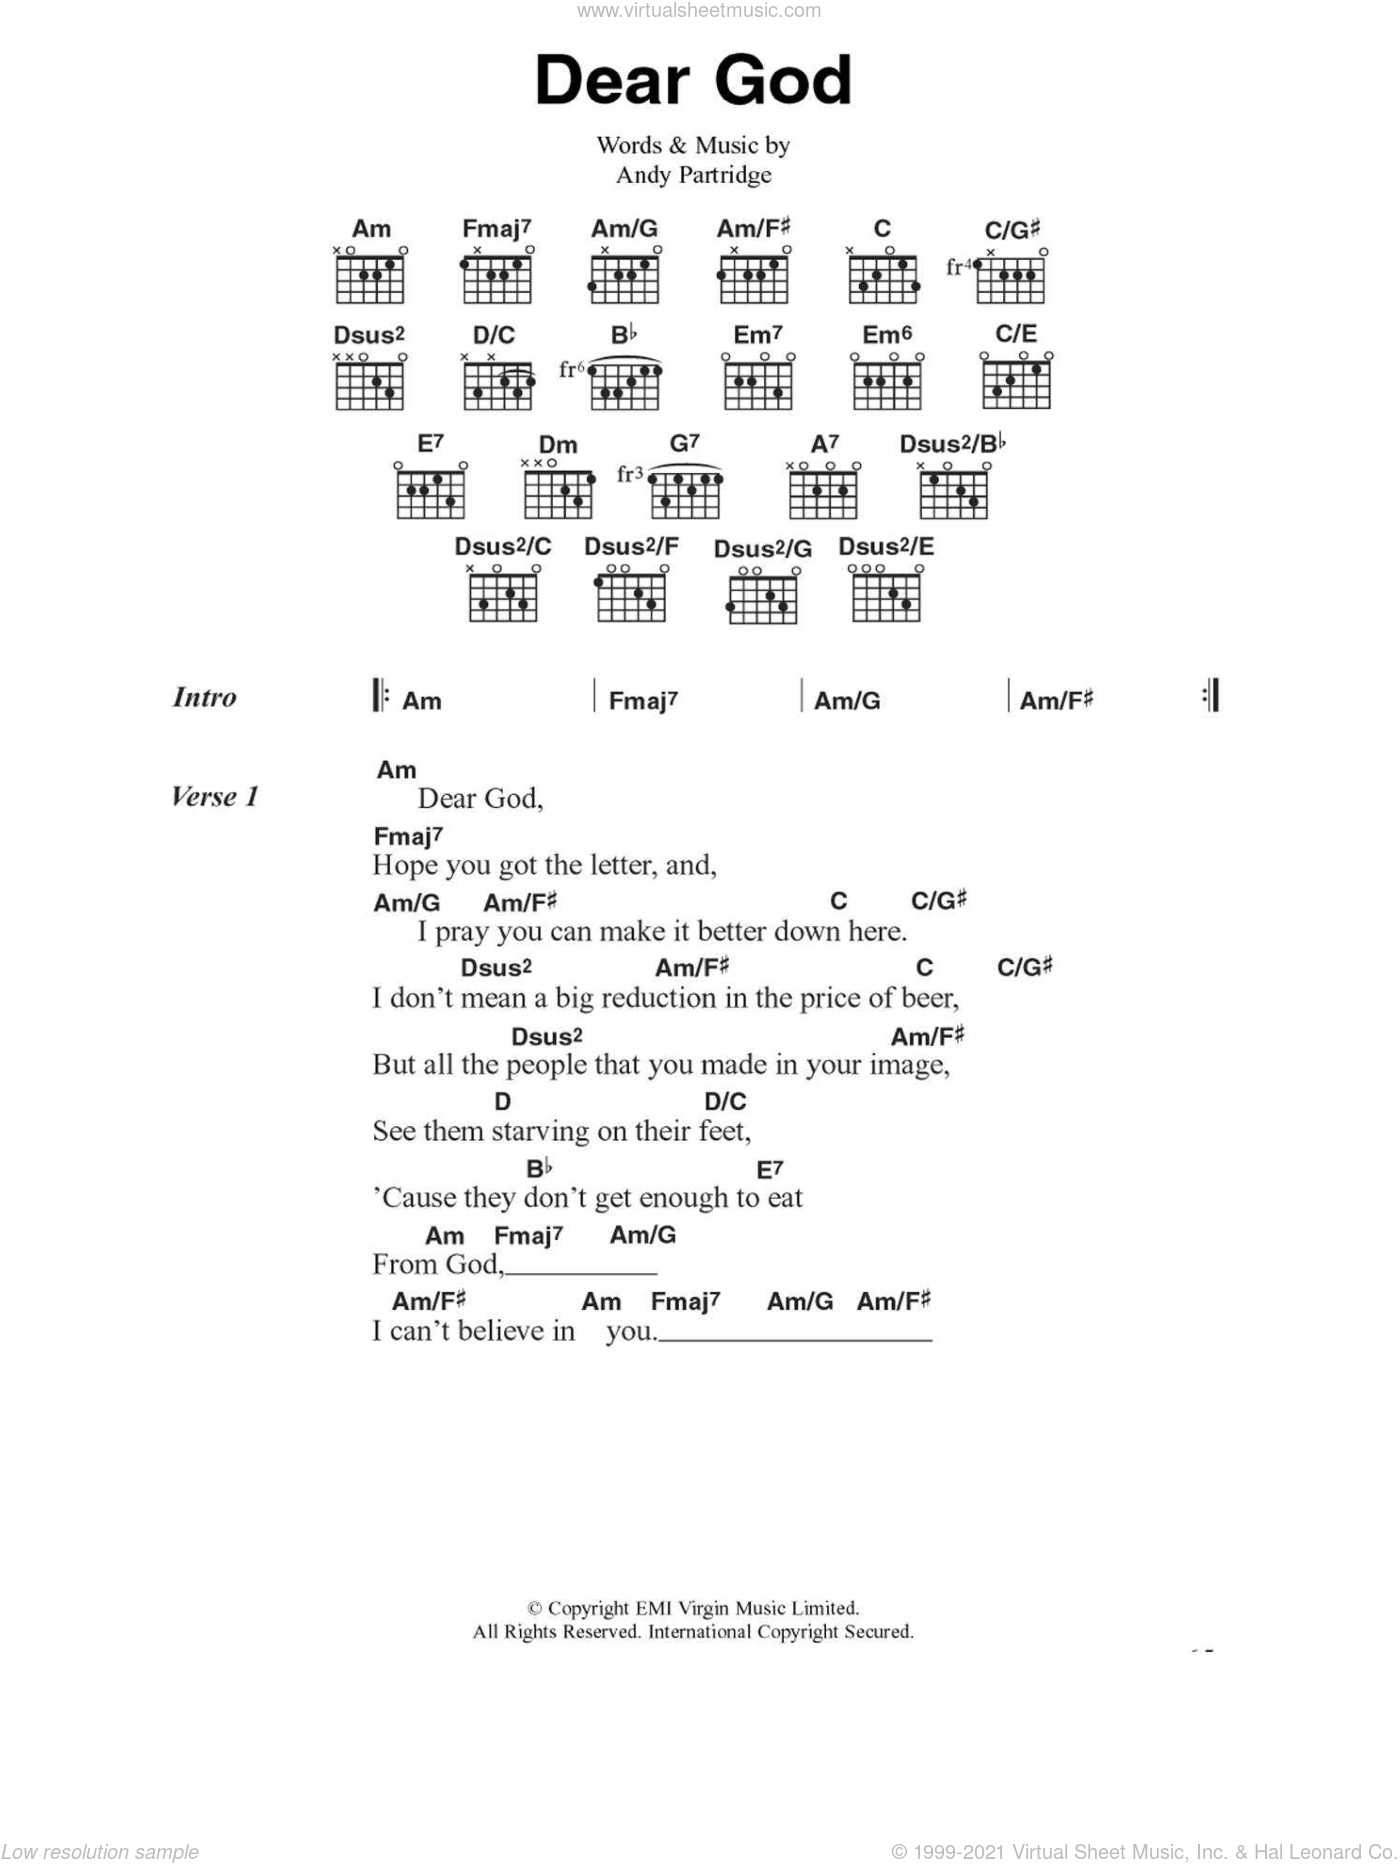 Dear God sheet music for guitar (chords) by Andy Partridge